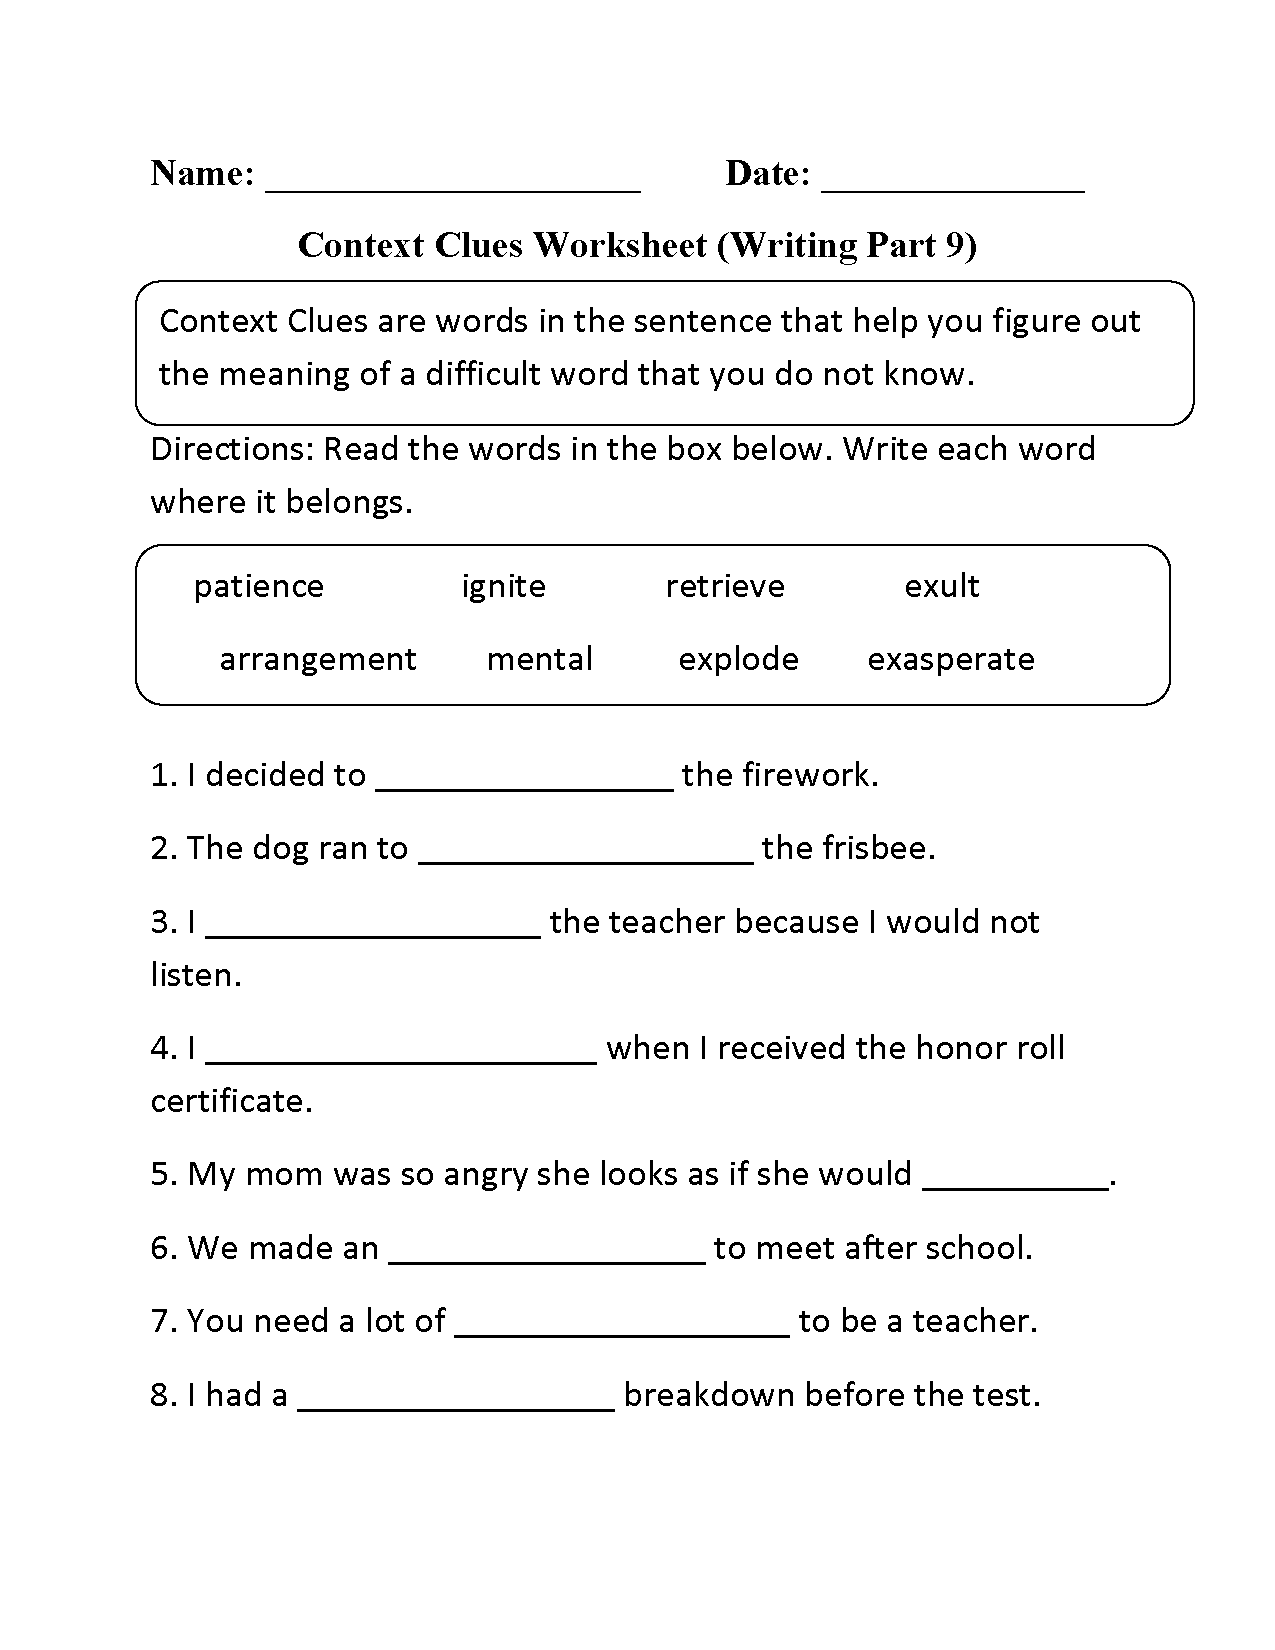 worksheet Context Clues In Paragraphs Worksheets context clues worksheet writing part 9 intermediate intermediate